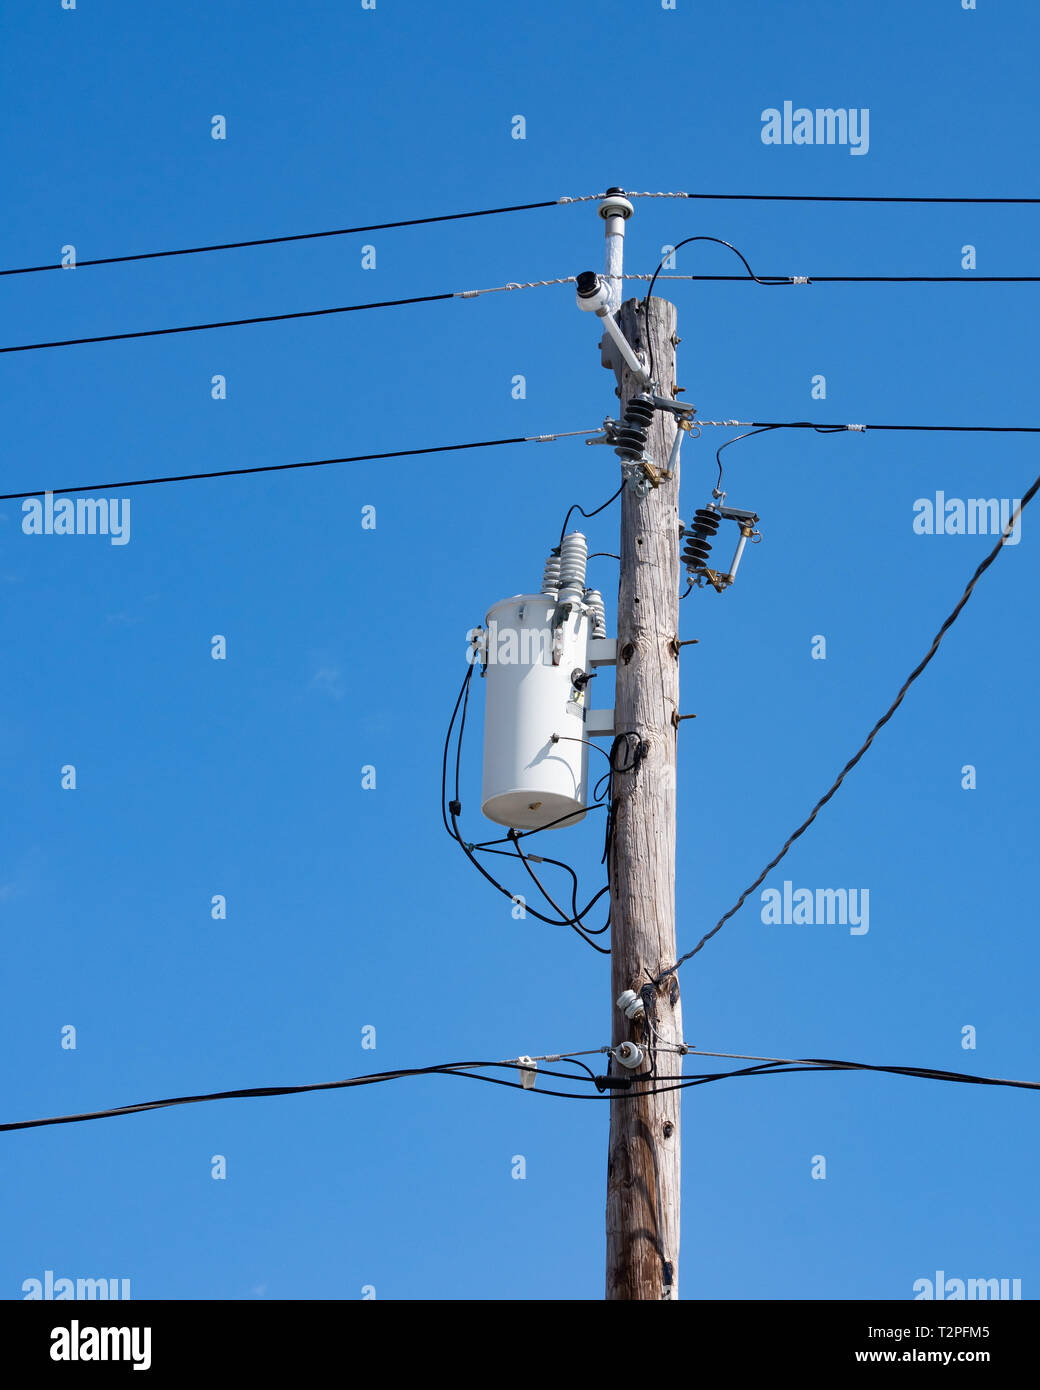 hight resolution of an electric transformer and transmission wires cable tv and telephone wires attached to an old wooden power pole with a deep blue sky background